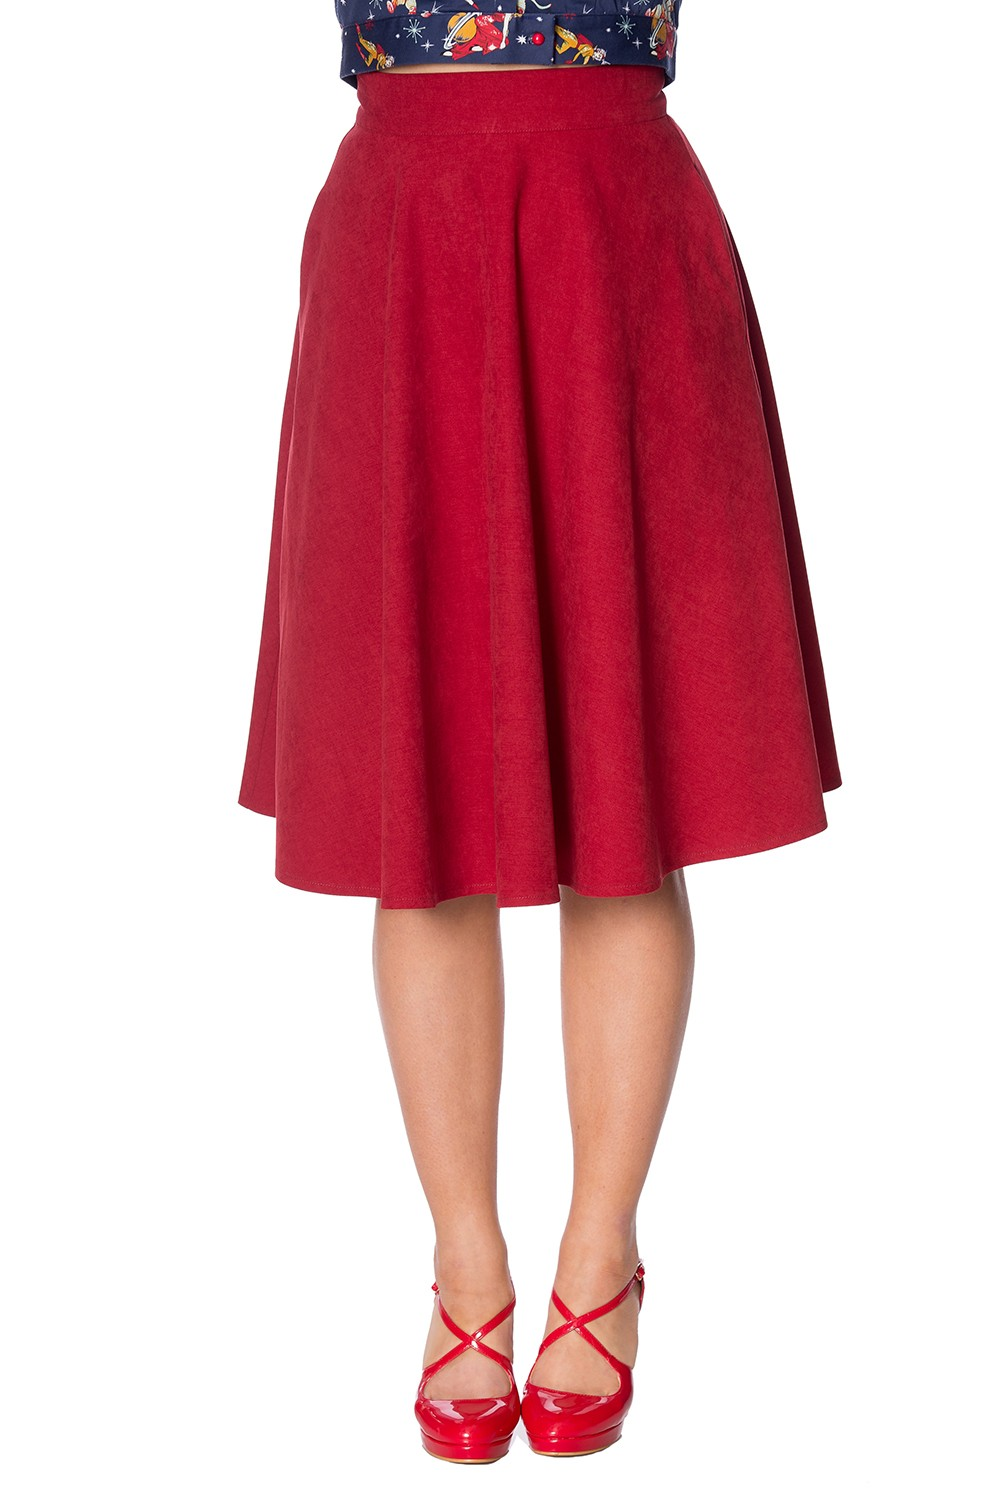 Banned Retro Sophisticated Lady Skirt - Red